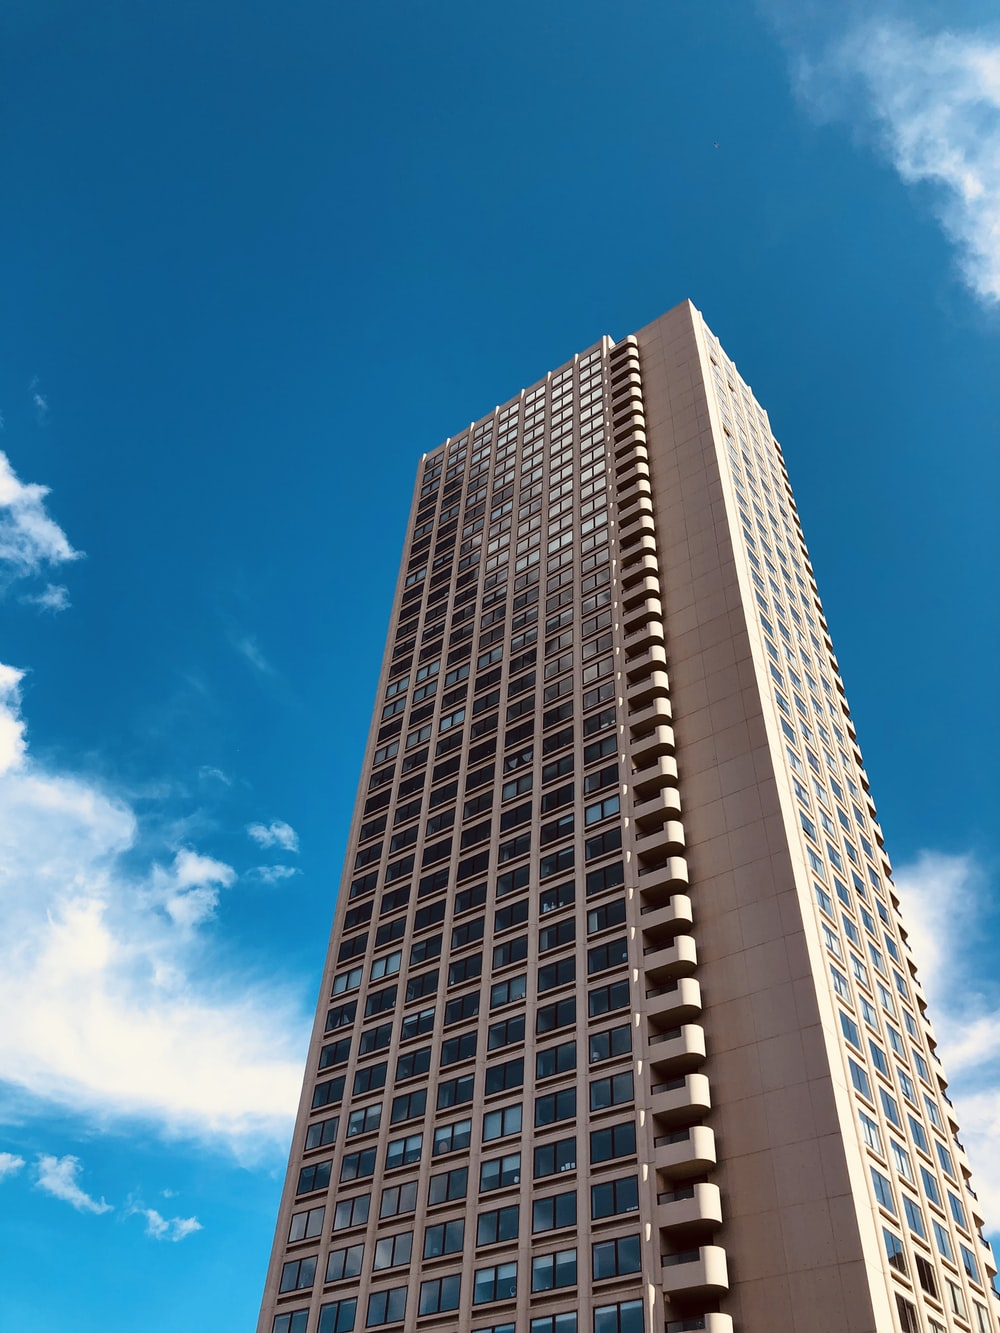 white high-rise building under blue and white skies